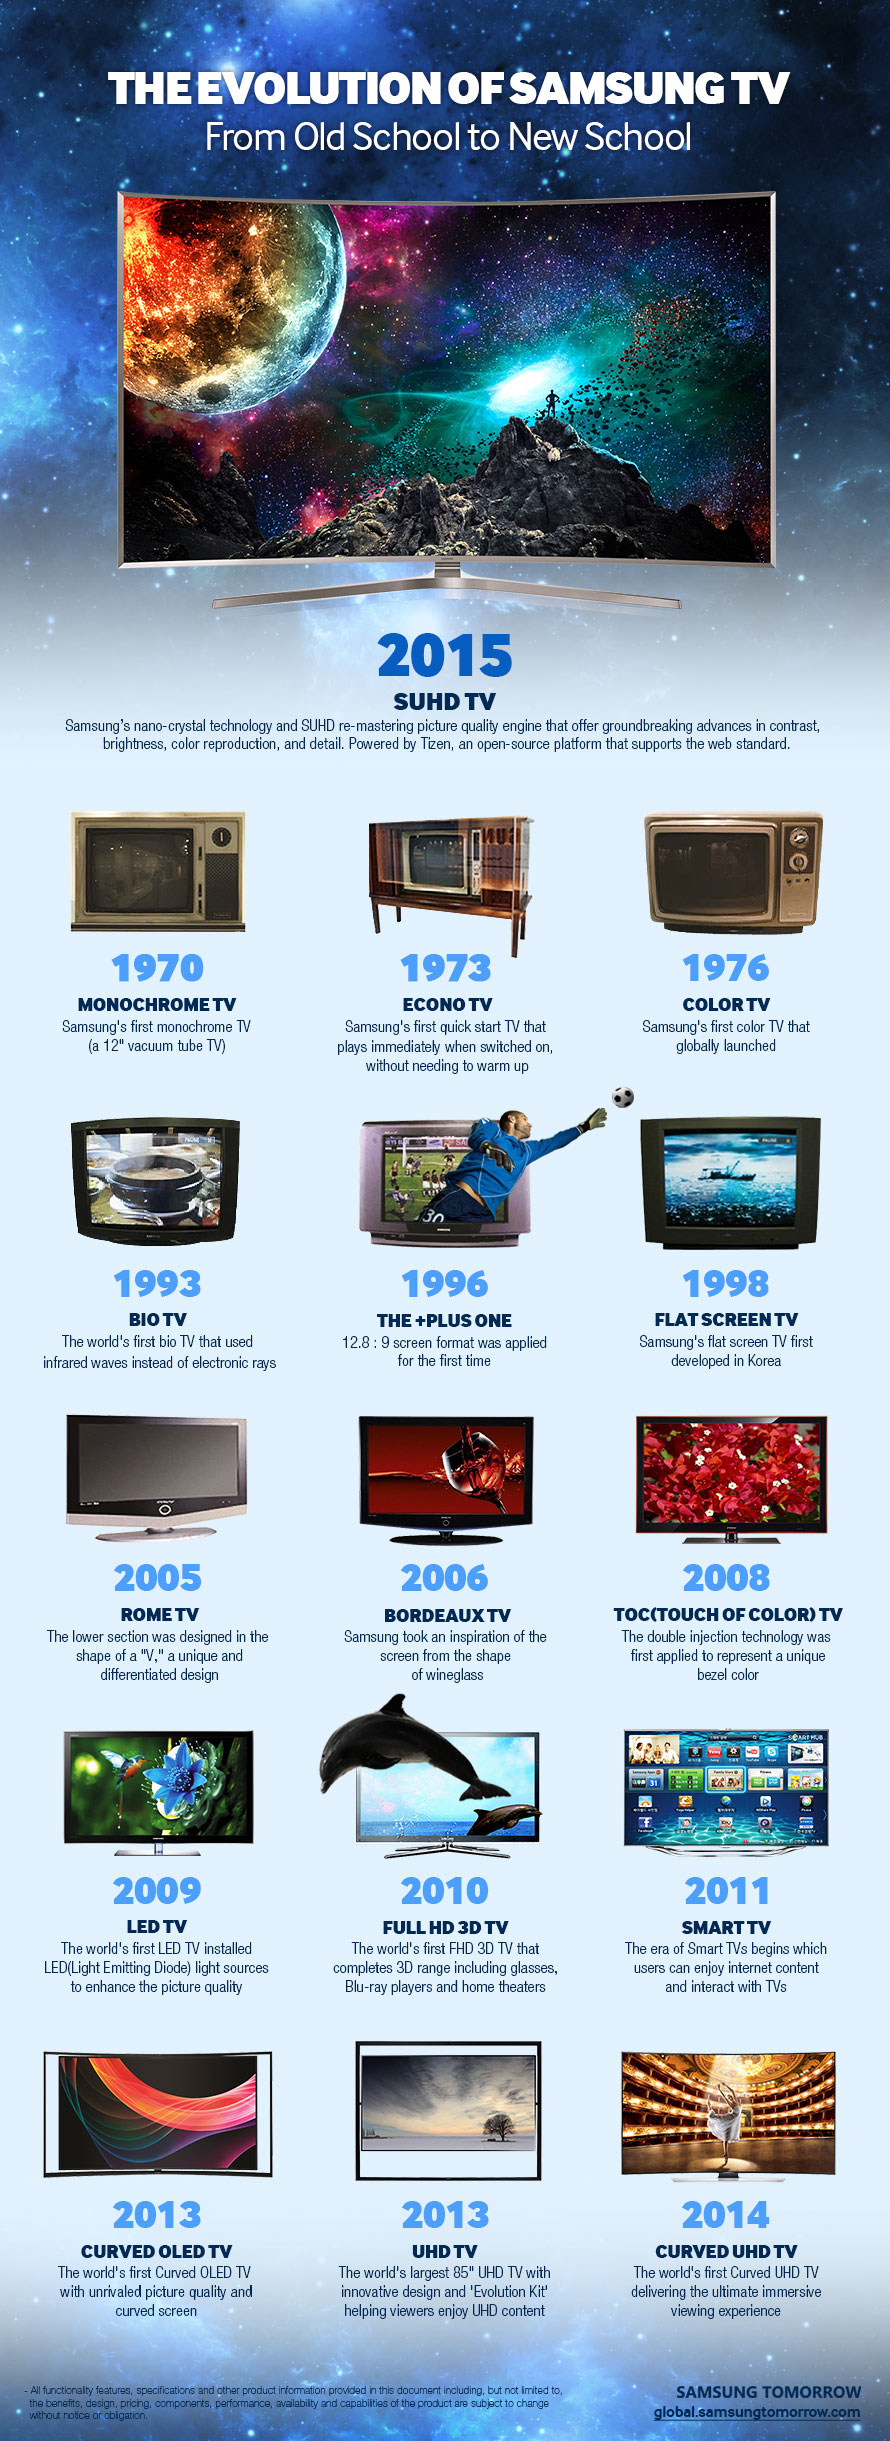 The Evolution of Samsung TV